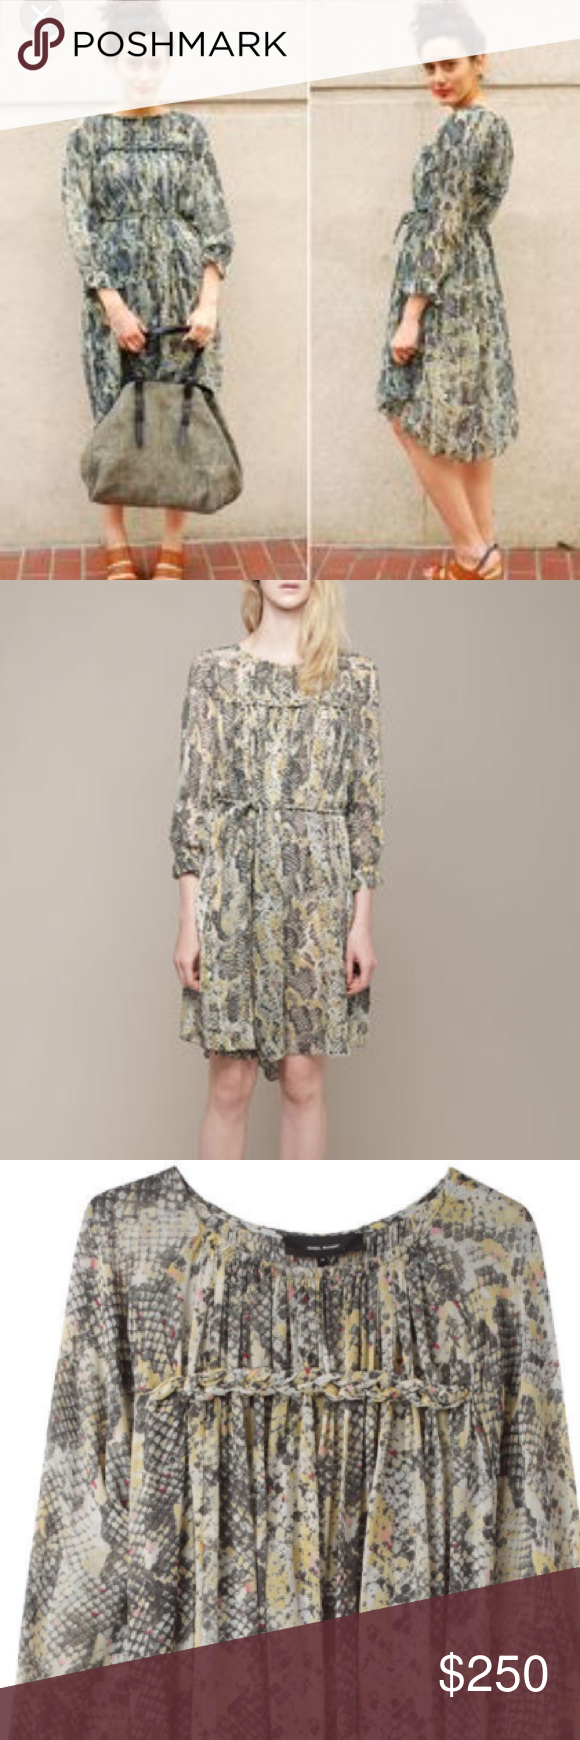 """Isabel Marant """"Martina"""" Silk Dress $950 Semi-sheer, silk dress with gathers at neck, braided details at front & back chest, and braided belt. Excellent, pre-worn condition.   Rounded neck with raw edges / Gathers at front and back neck / Long sleeves / Gathered and ruffled sleeve hem /  Semi-sheer snake printed silk  / 100% silk. Size 40, would fit a small or medium. Link to additional product description: http://www.lagarconne.com/store/item.htm?itemid=15742&sid=24 Isabel Marant Dresses…"""